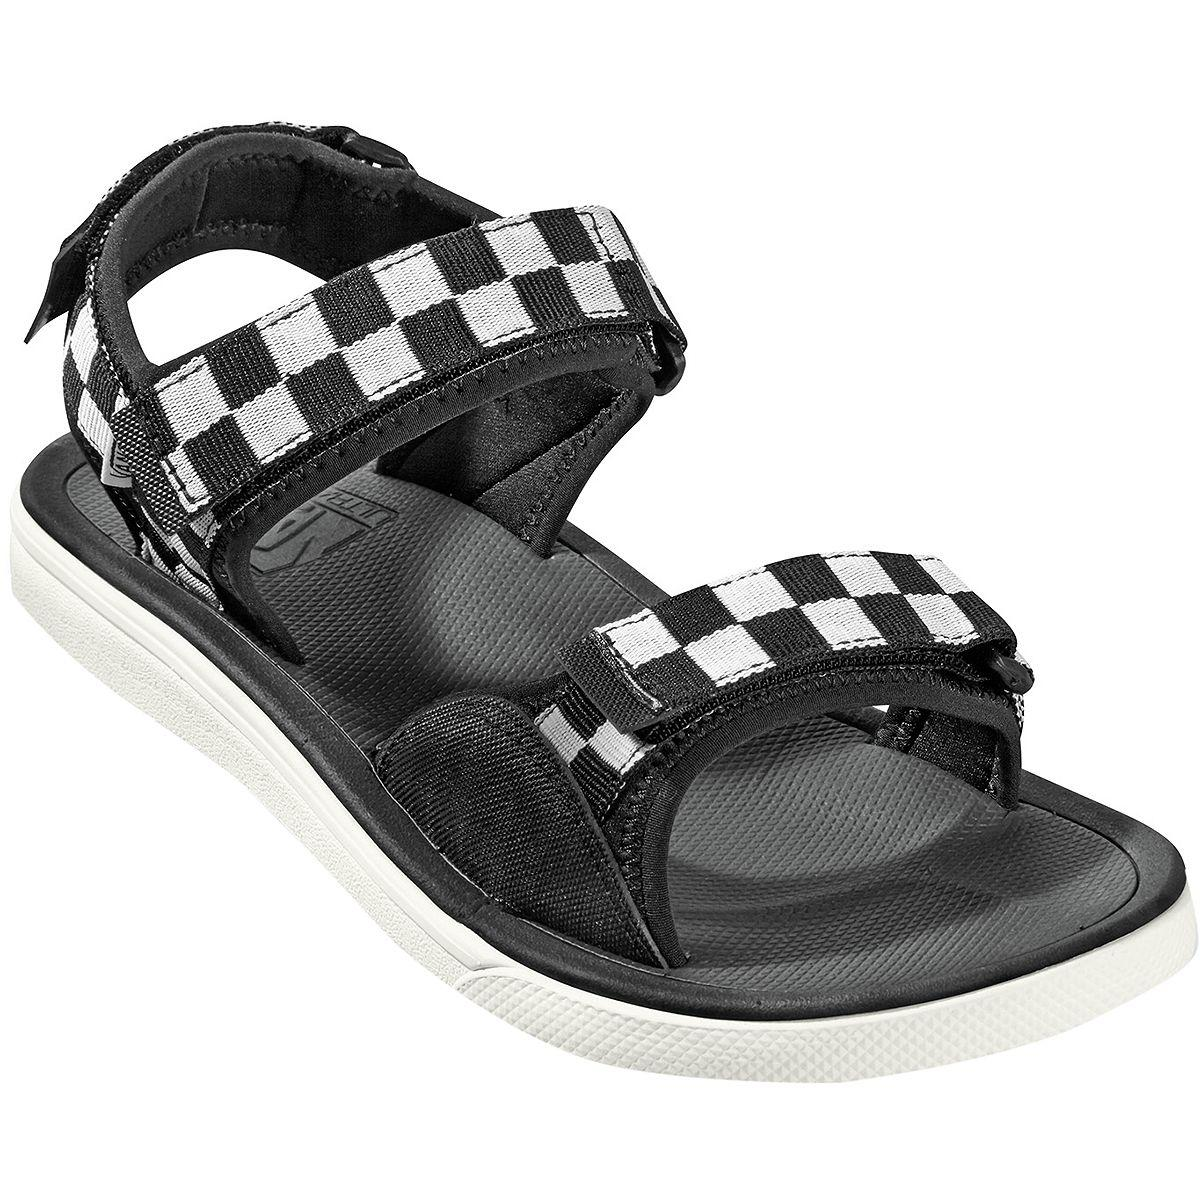 2e10692931ea Lyst - Vans Checker Ultrarange Tri-lock Sandals in Black for Men ...